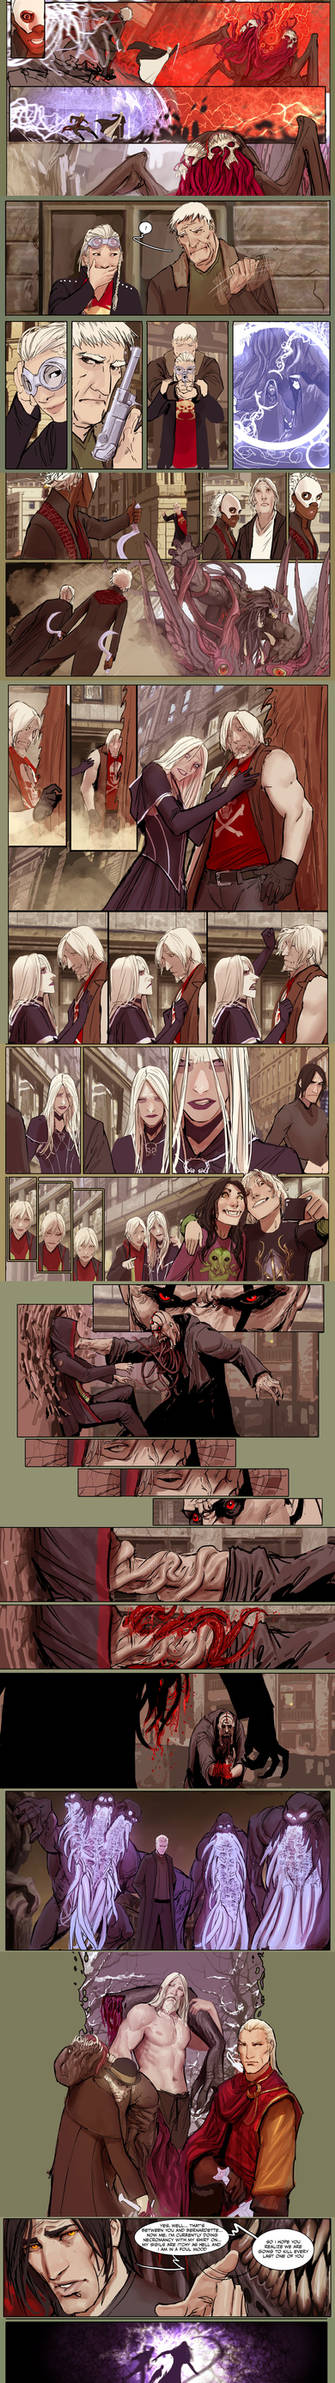 death vigil 6 collage preview